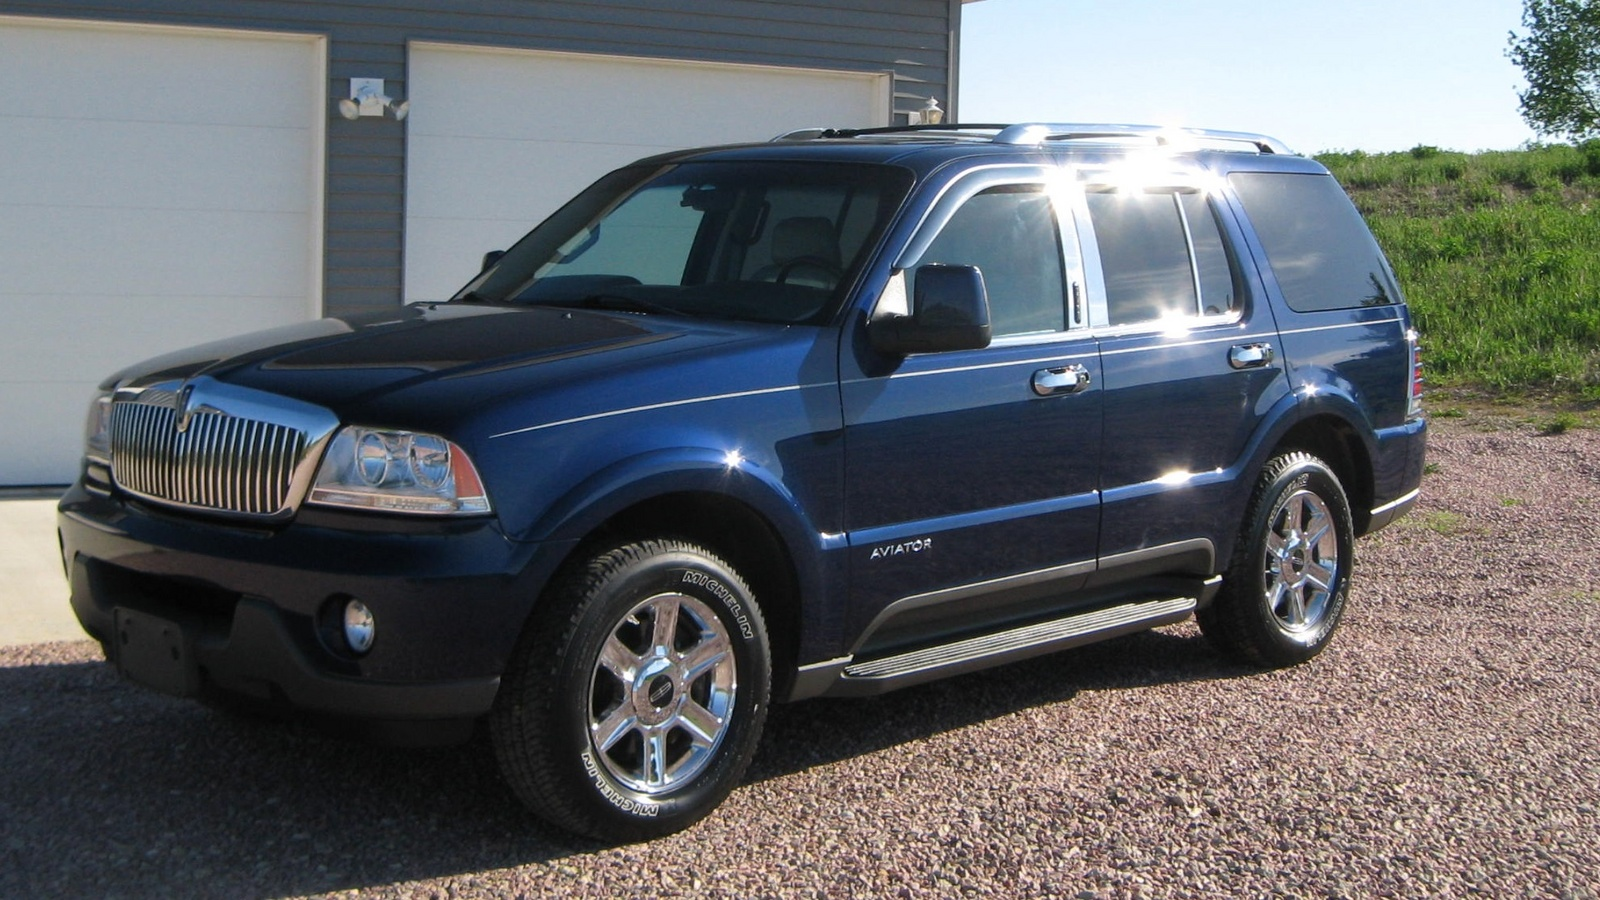 2004 lincoln aviator exterior pictures cargurus. Black Bedroom Furniture Sets. Home Design Ideas